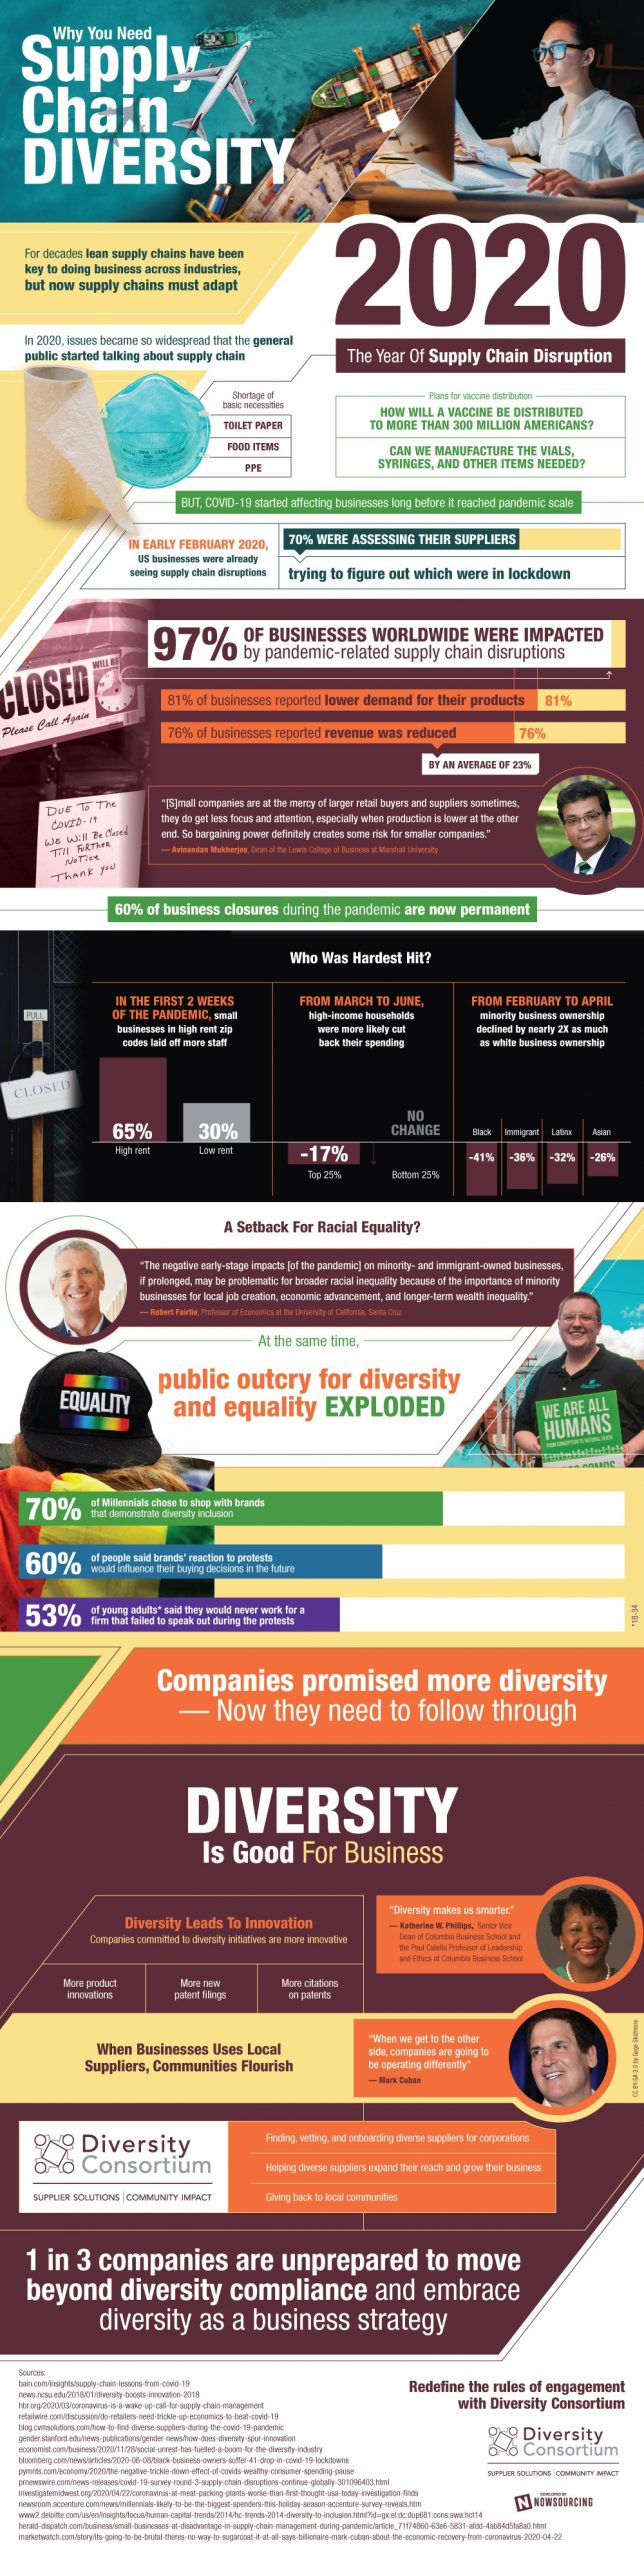 Why You Need Diversity [Infographic]